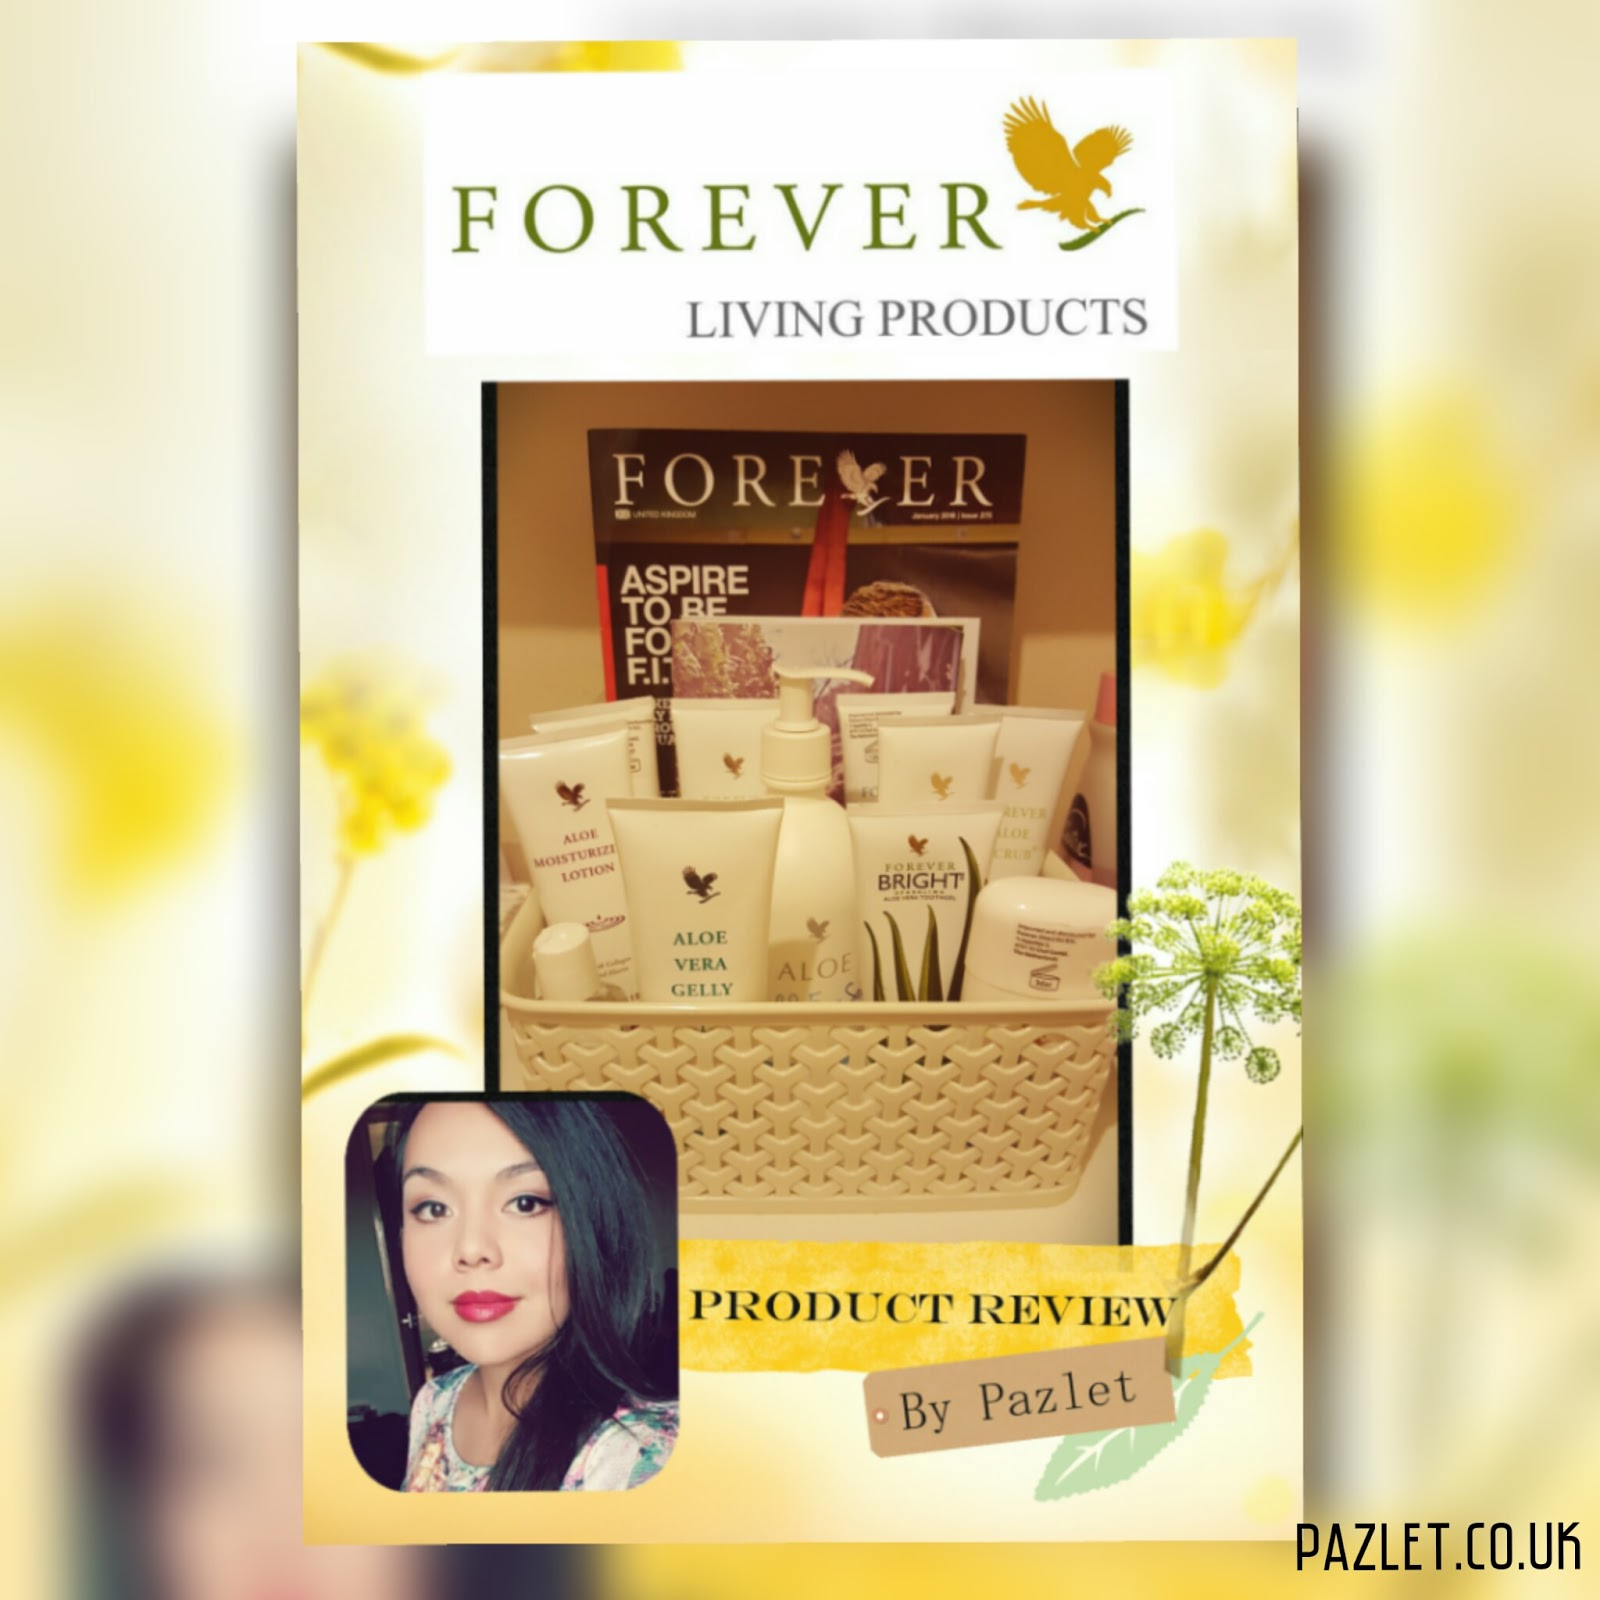 Forever Living: A Scam Or Not? — Careful Cash